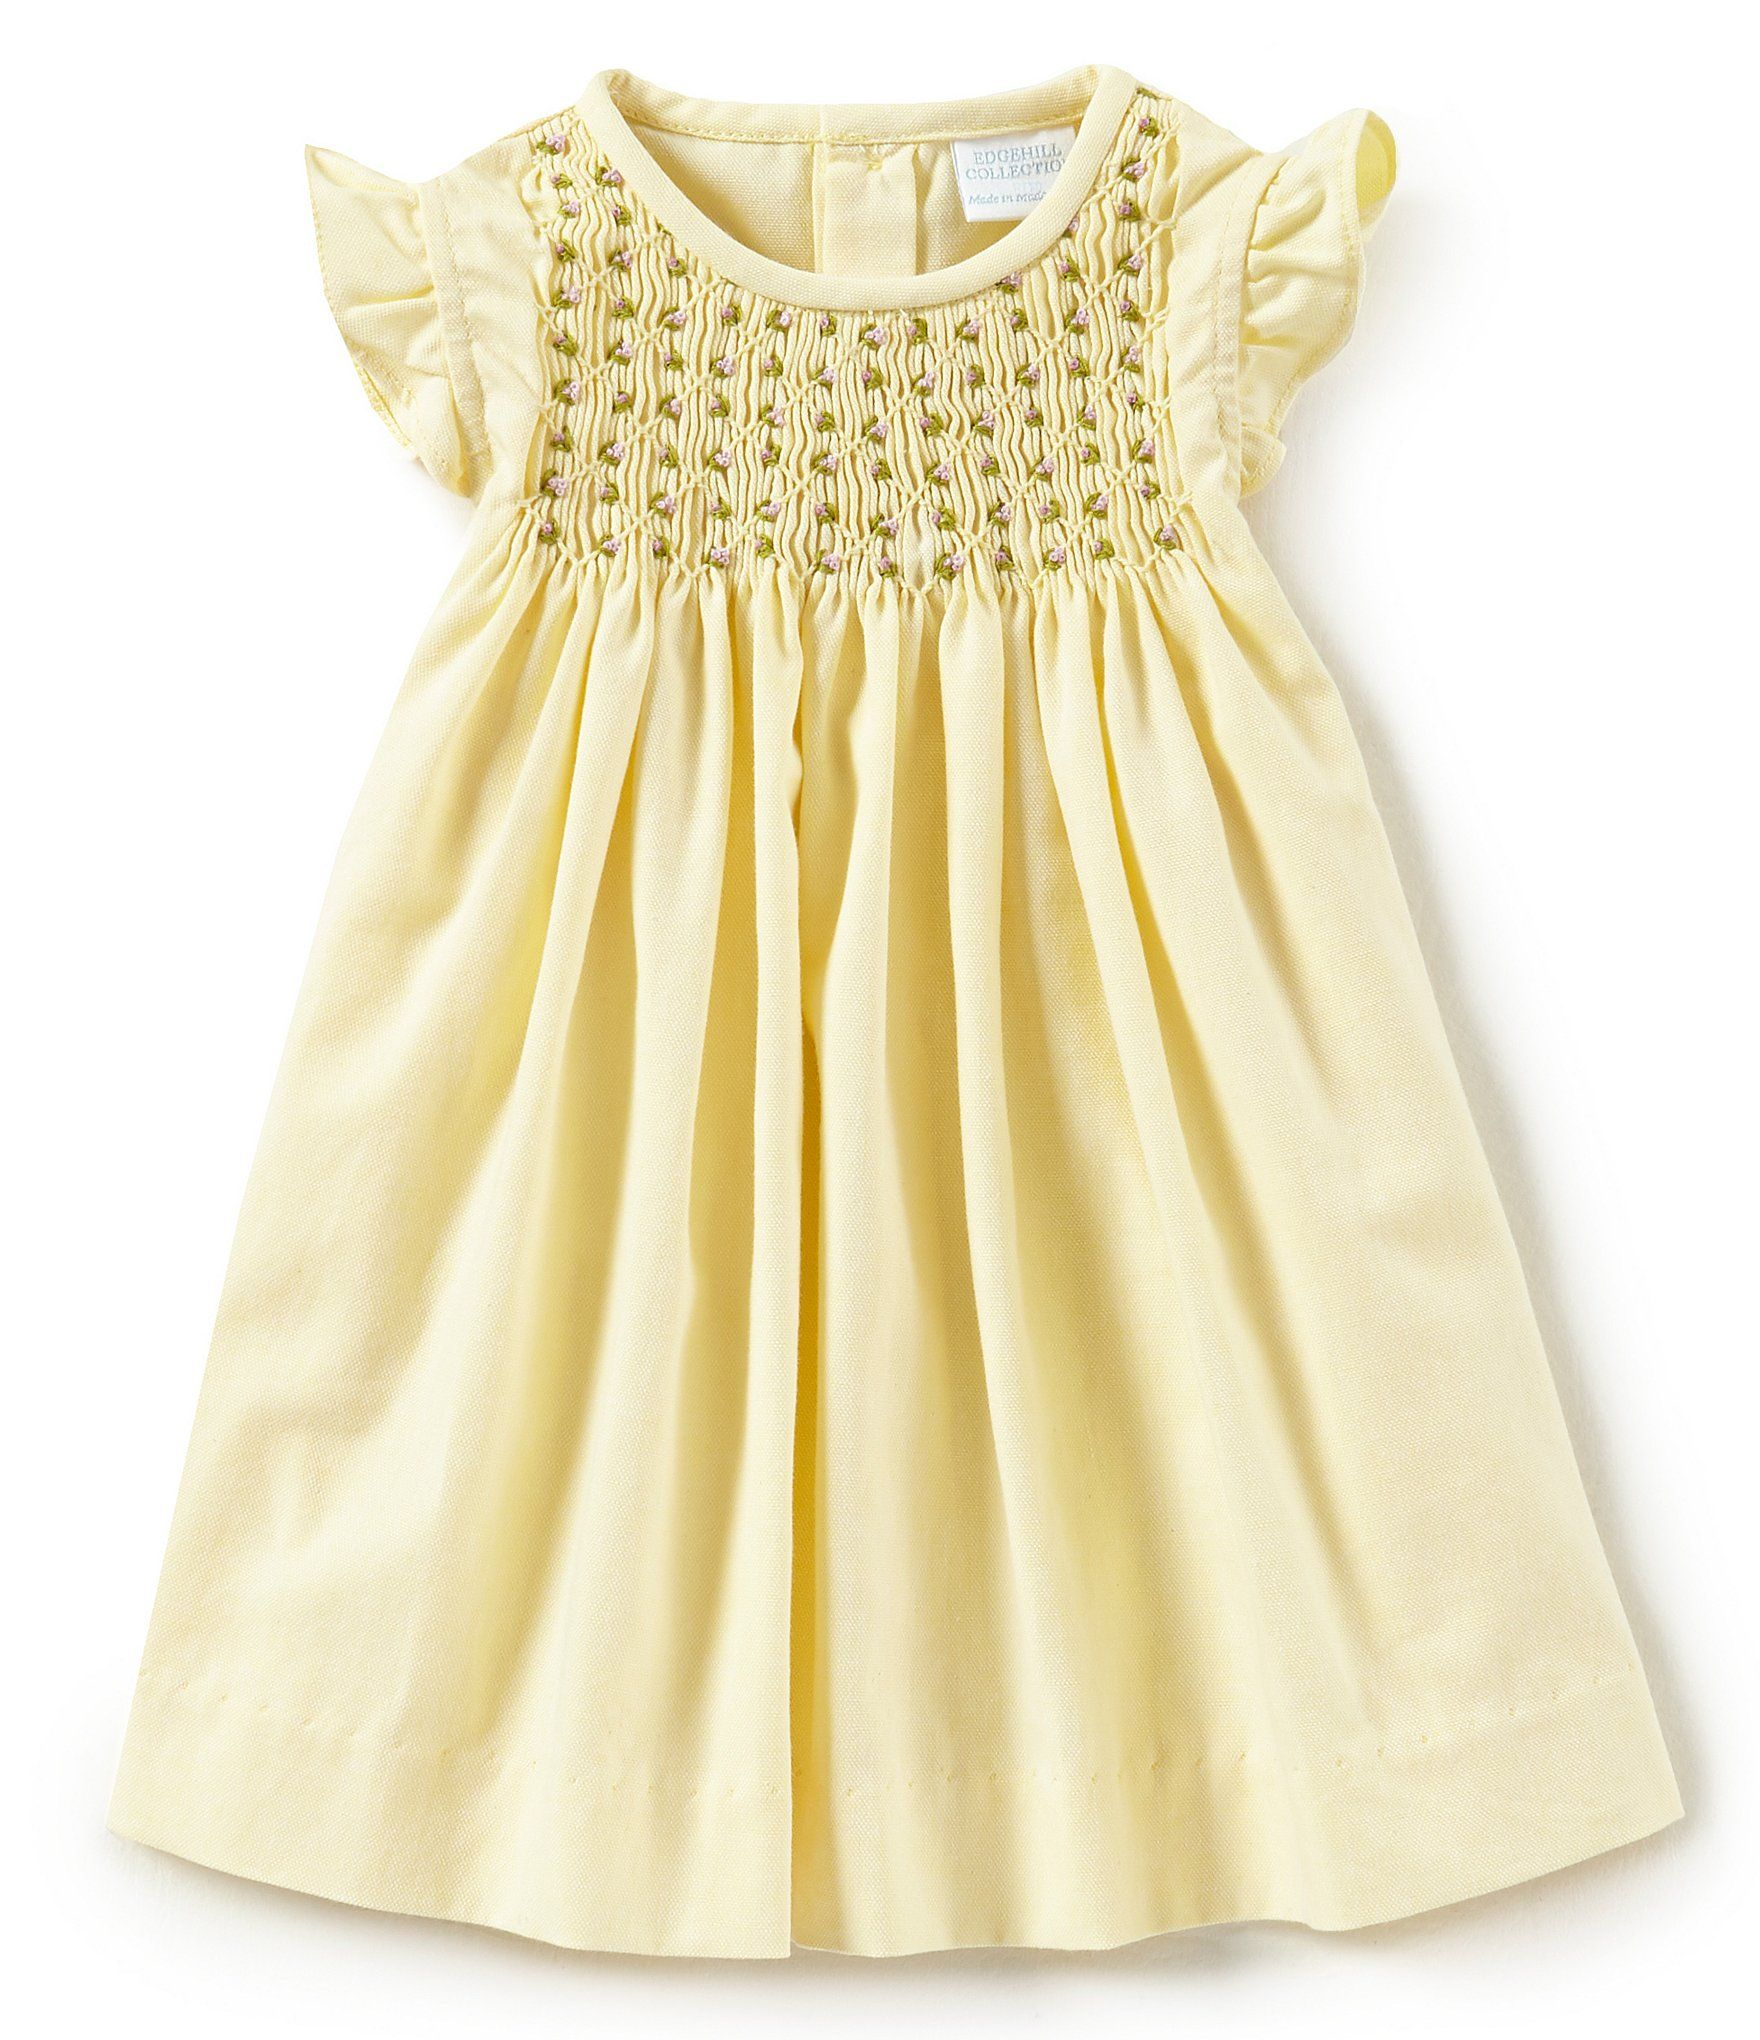 2f32d0d12 Shop for Edgehill Collection Baby Girls 3-24 Months Solid Smocked ...